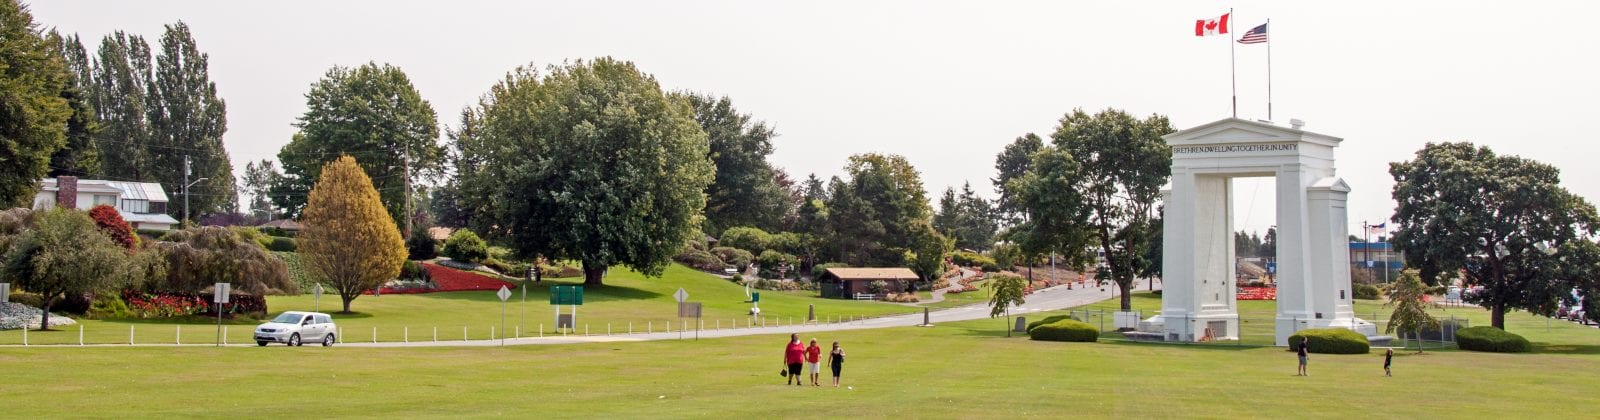 Canada And Usa Peace Arch On Country's Border